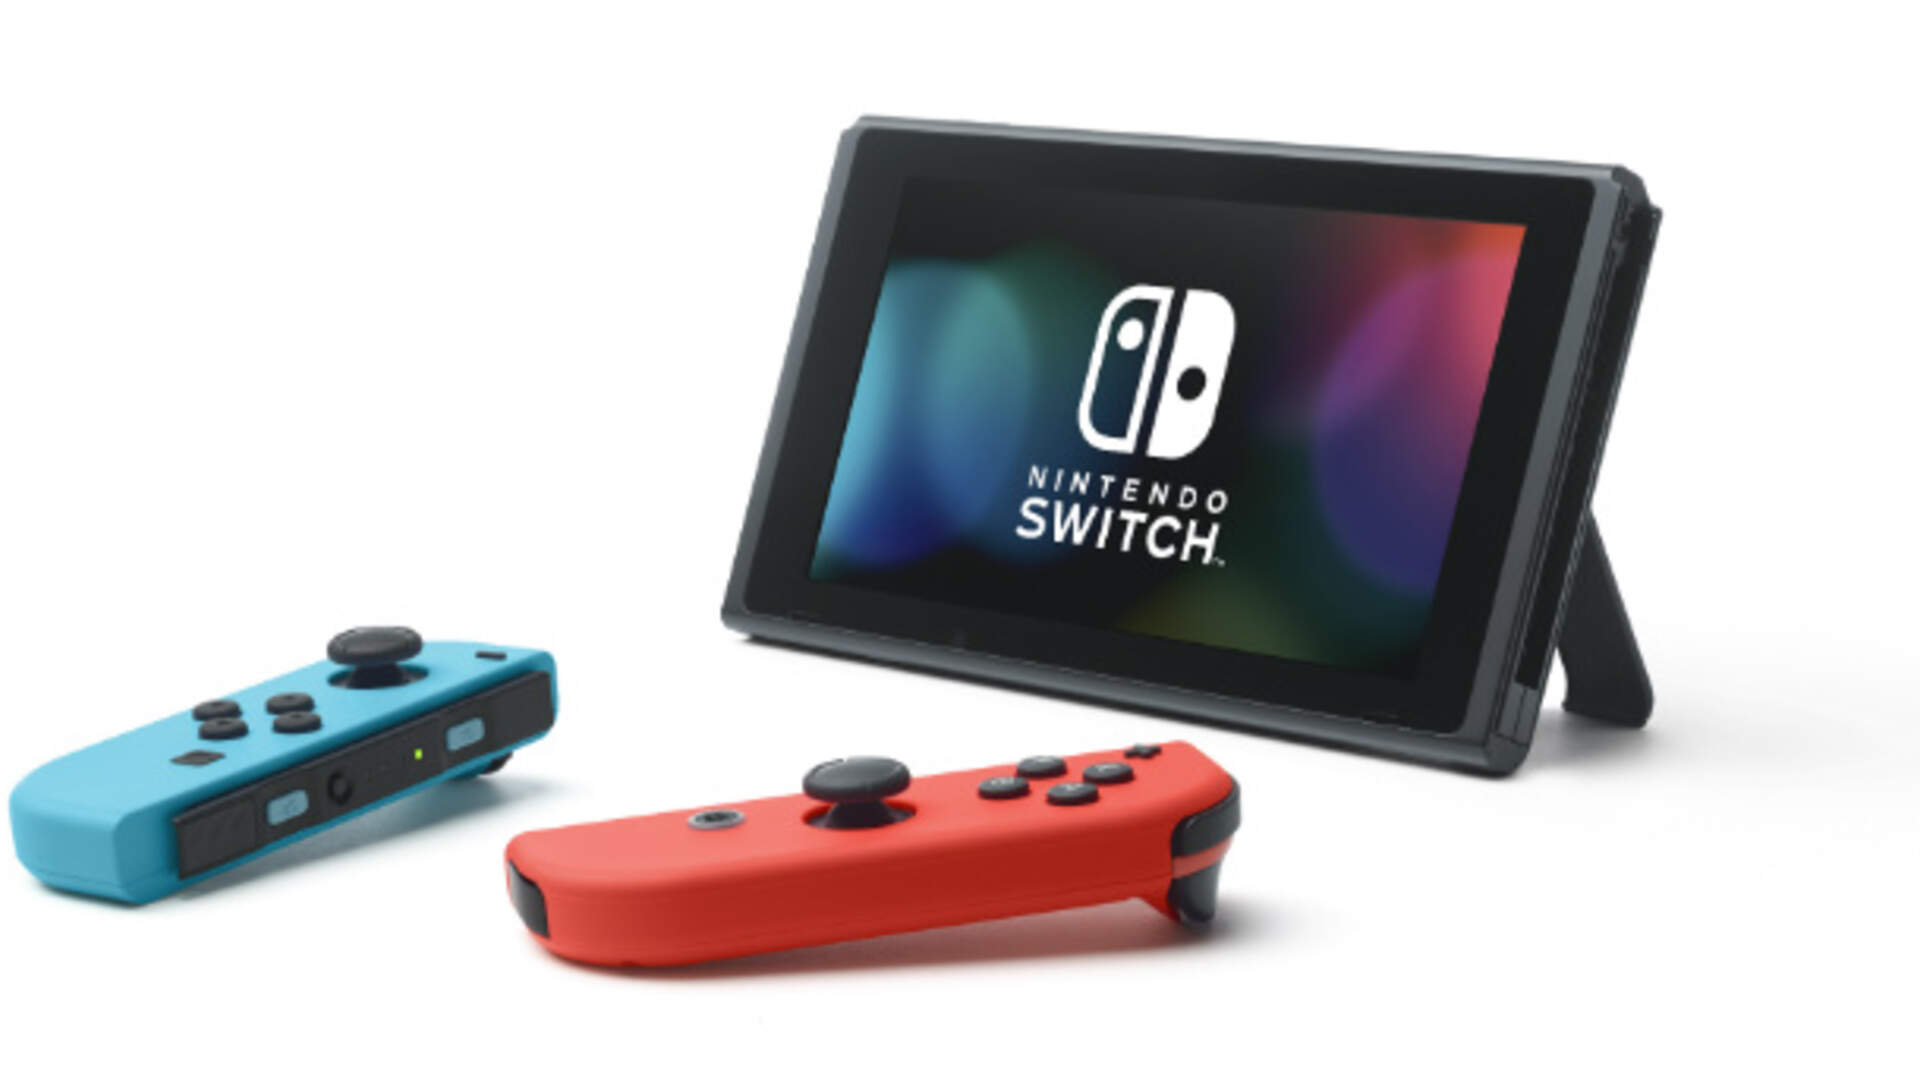 What is the Nintendo Switch's Battery Life? Between 2.5 and 6 Hours